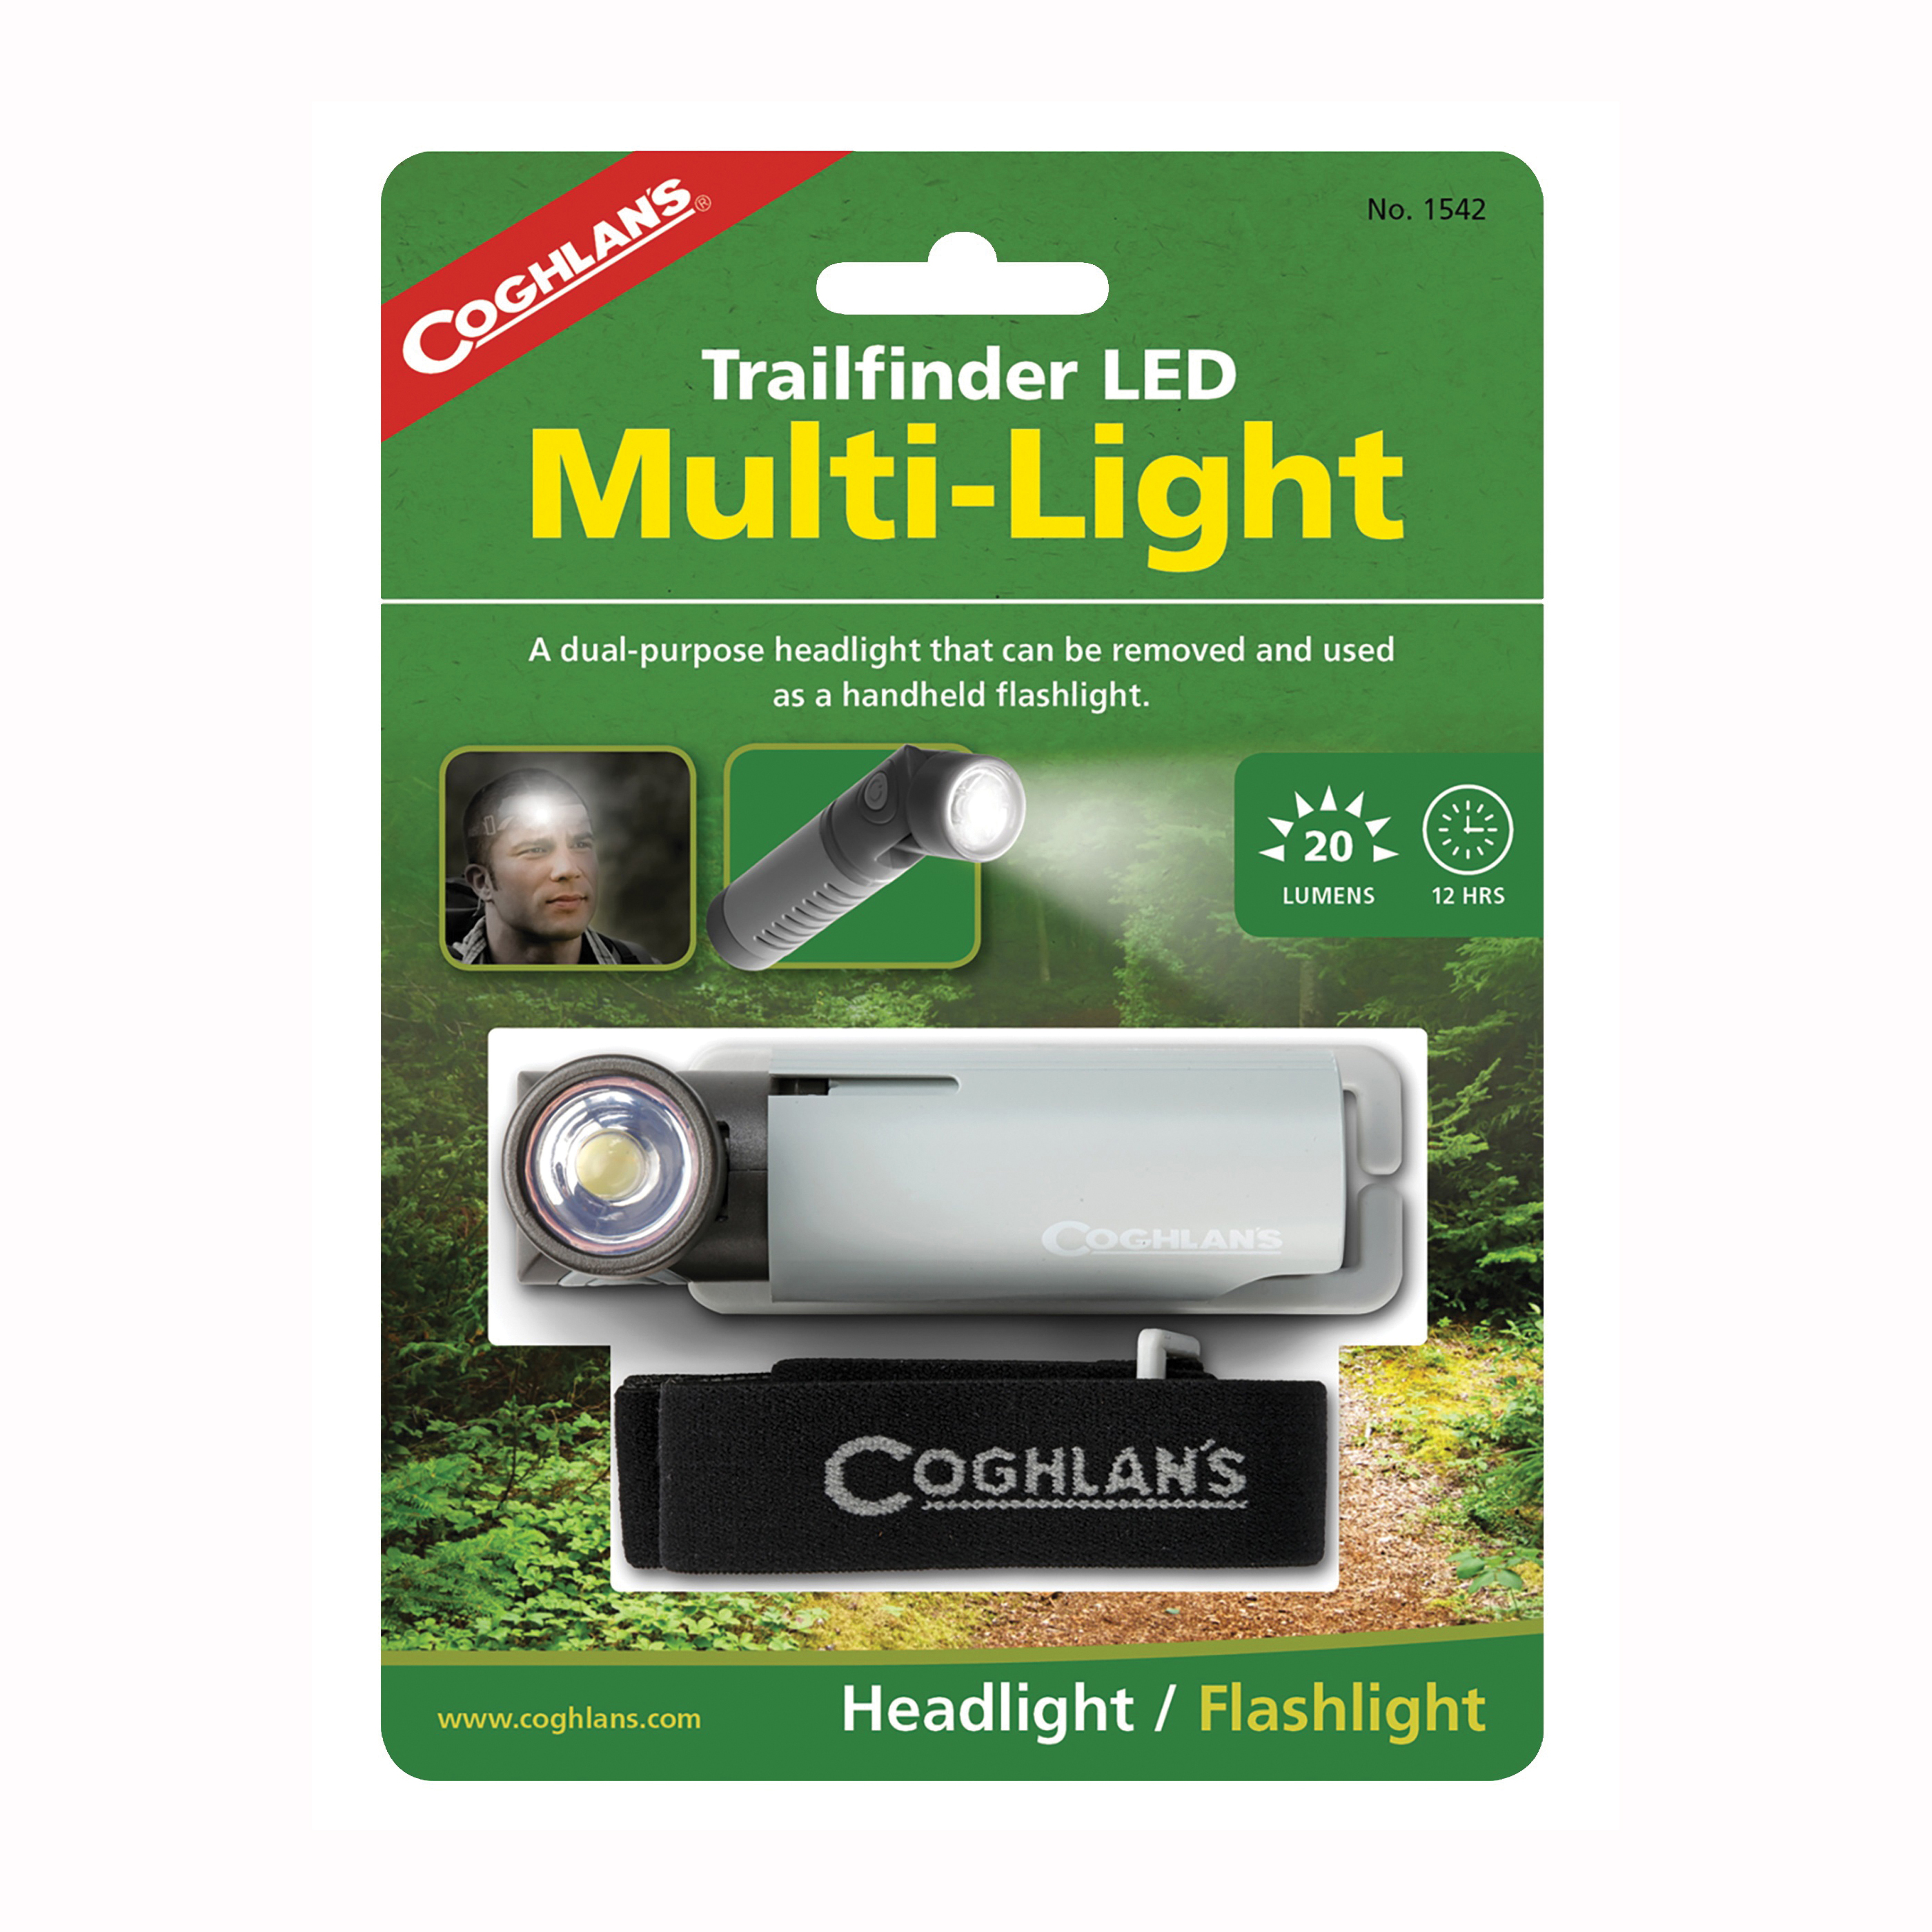 Picture of COGHLAN'S 1542 Trailfinder LED Multi-Light, Battery, LED Lamp, 20 Lumens Lumens